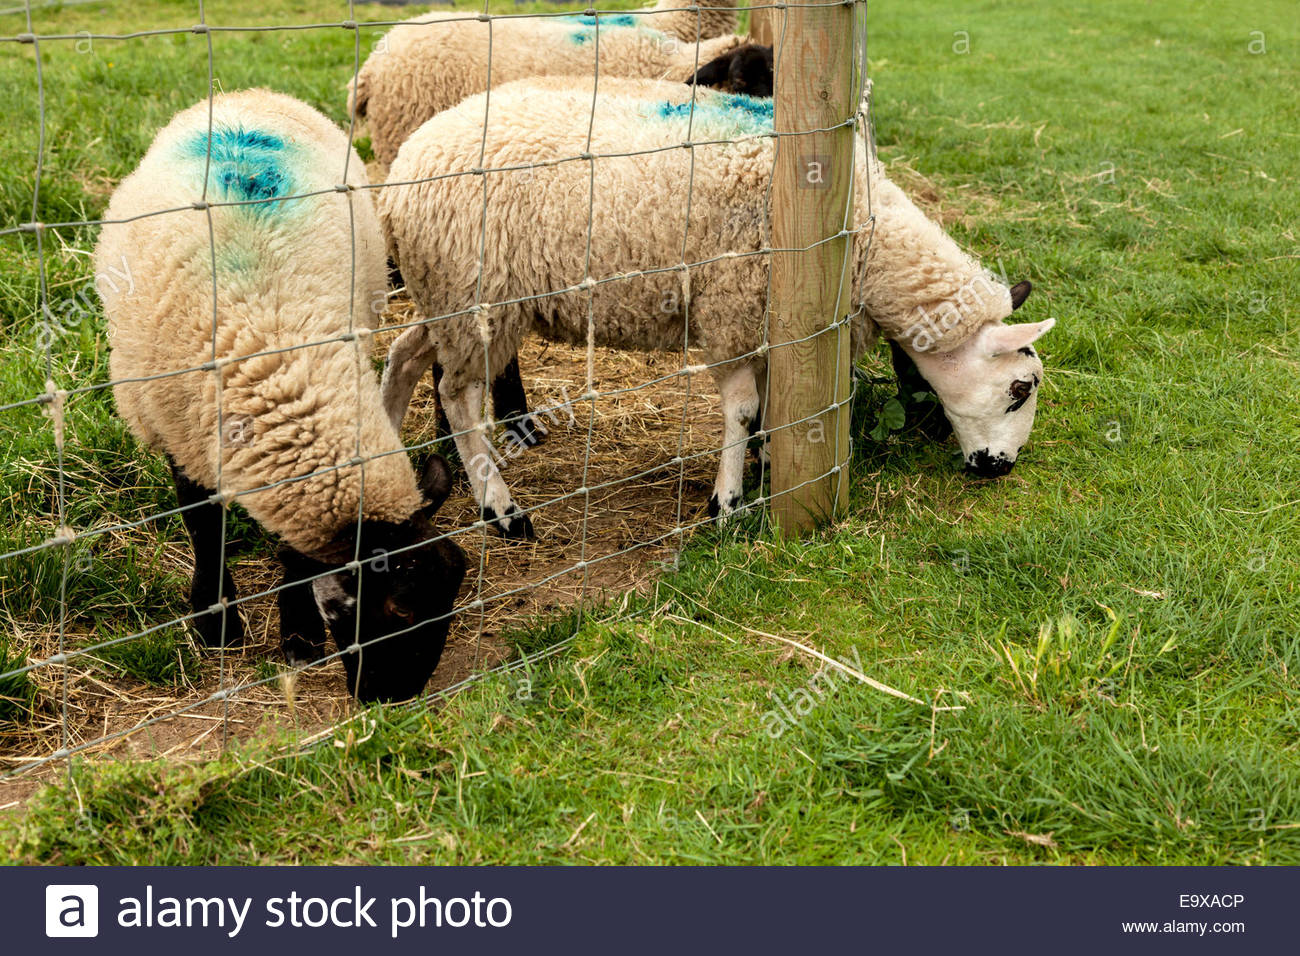 Grazing sheep with head poking through wire fence - Stock Image